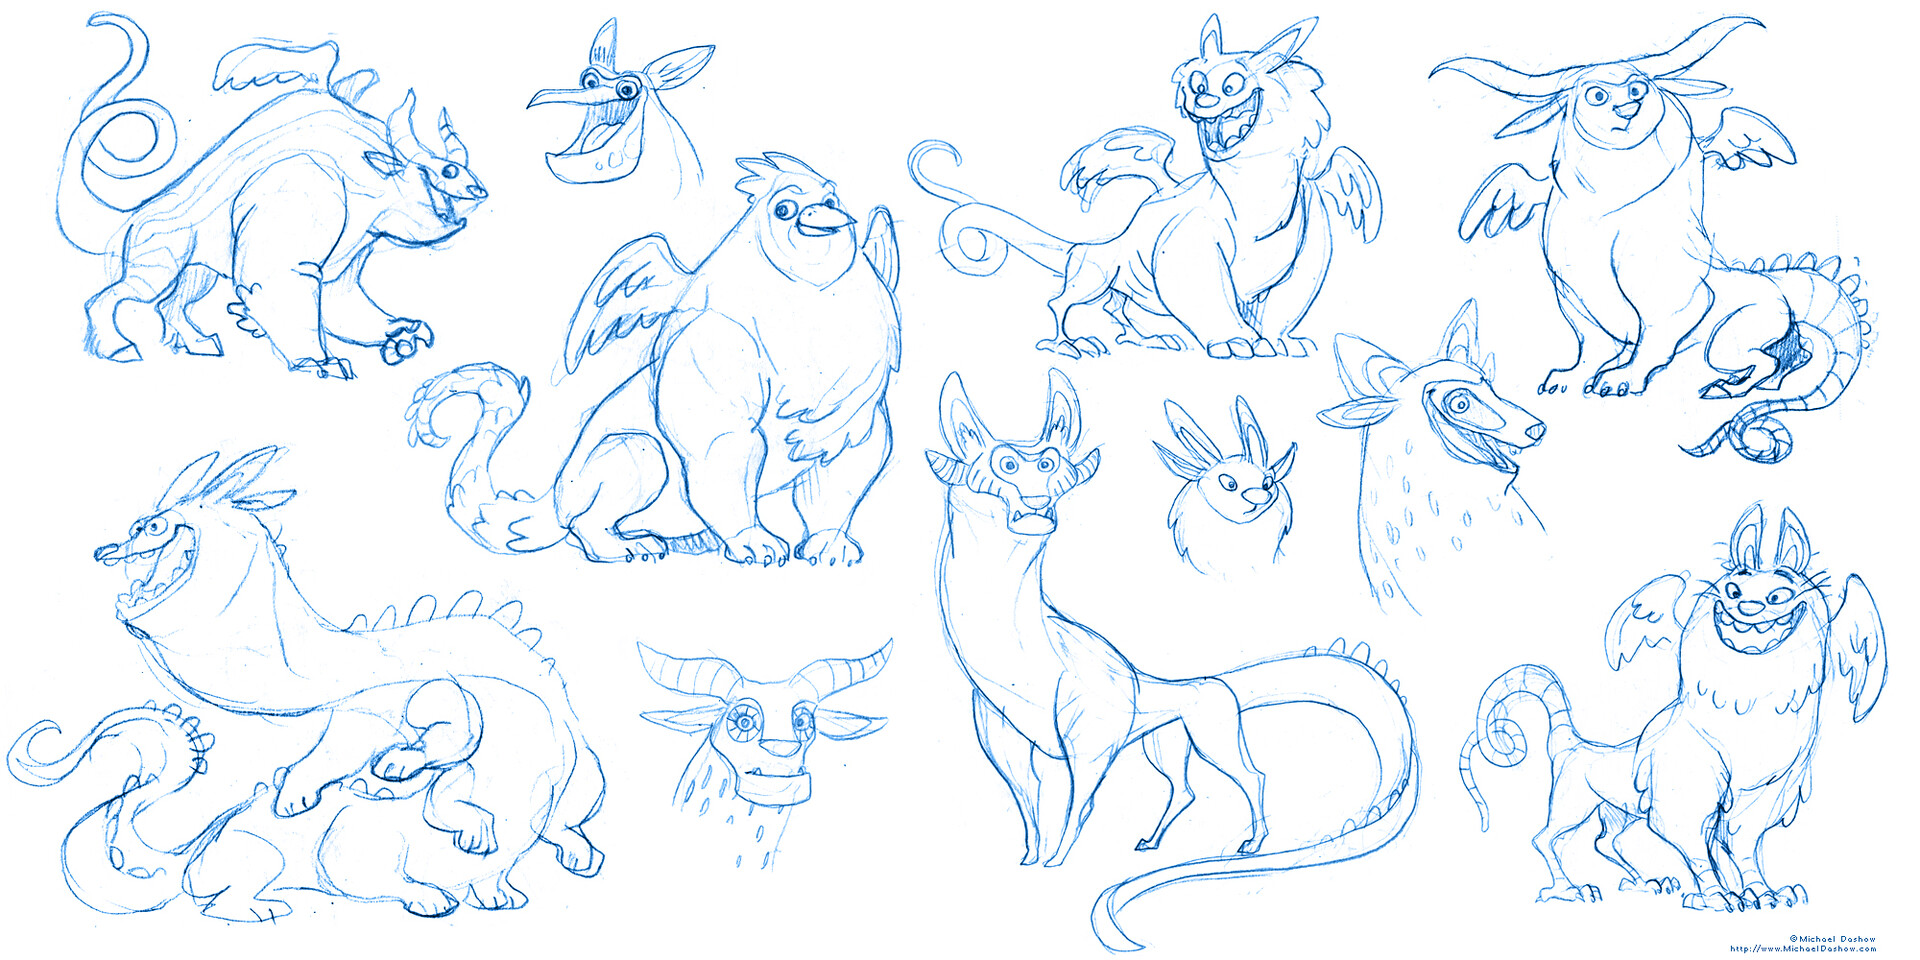 Michael dashow alebrijes 02 sketch page 7